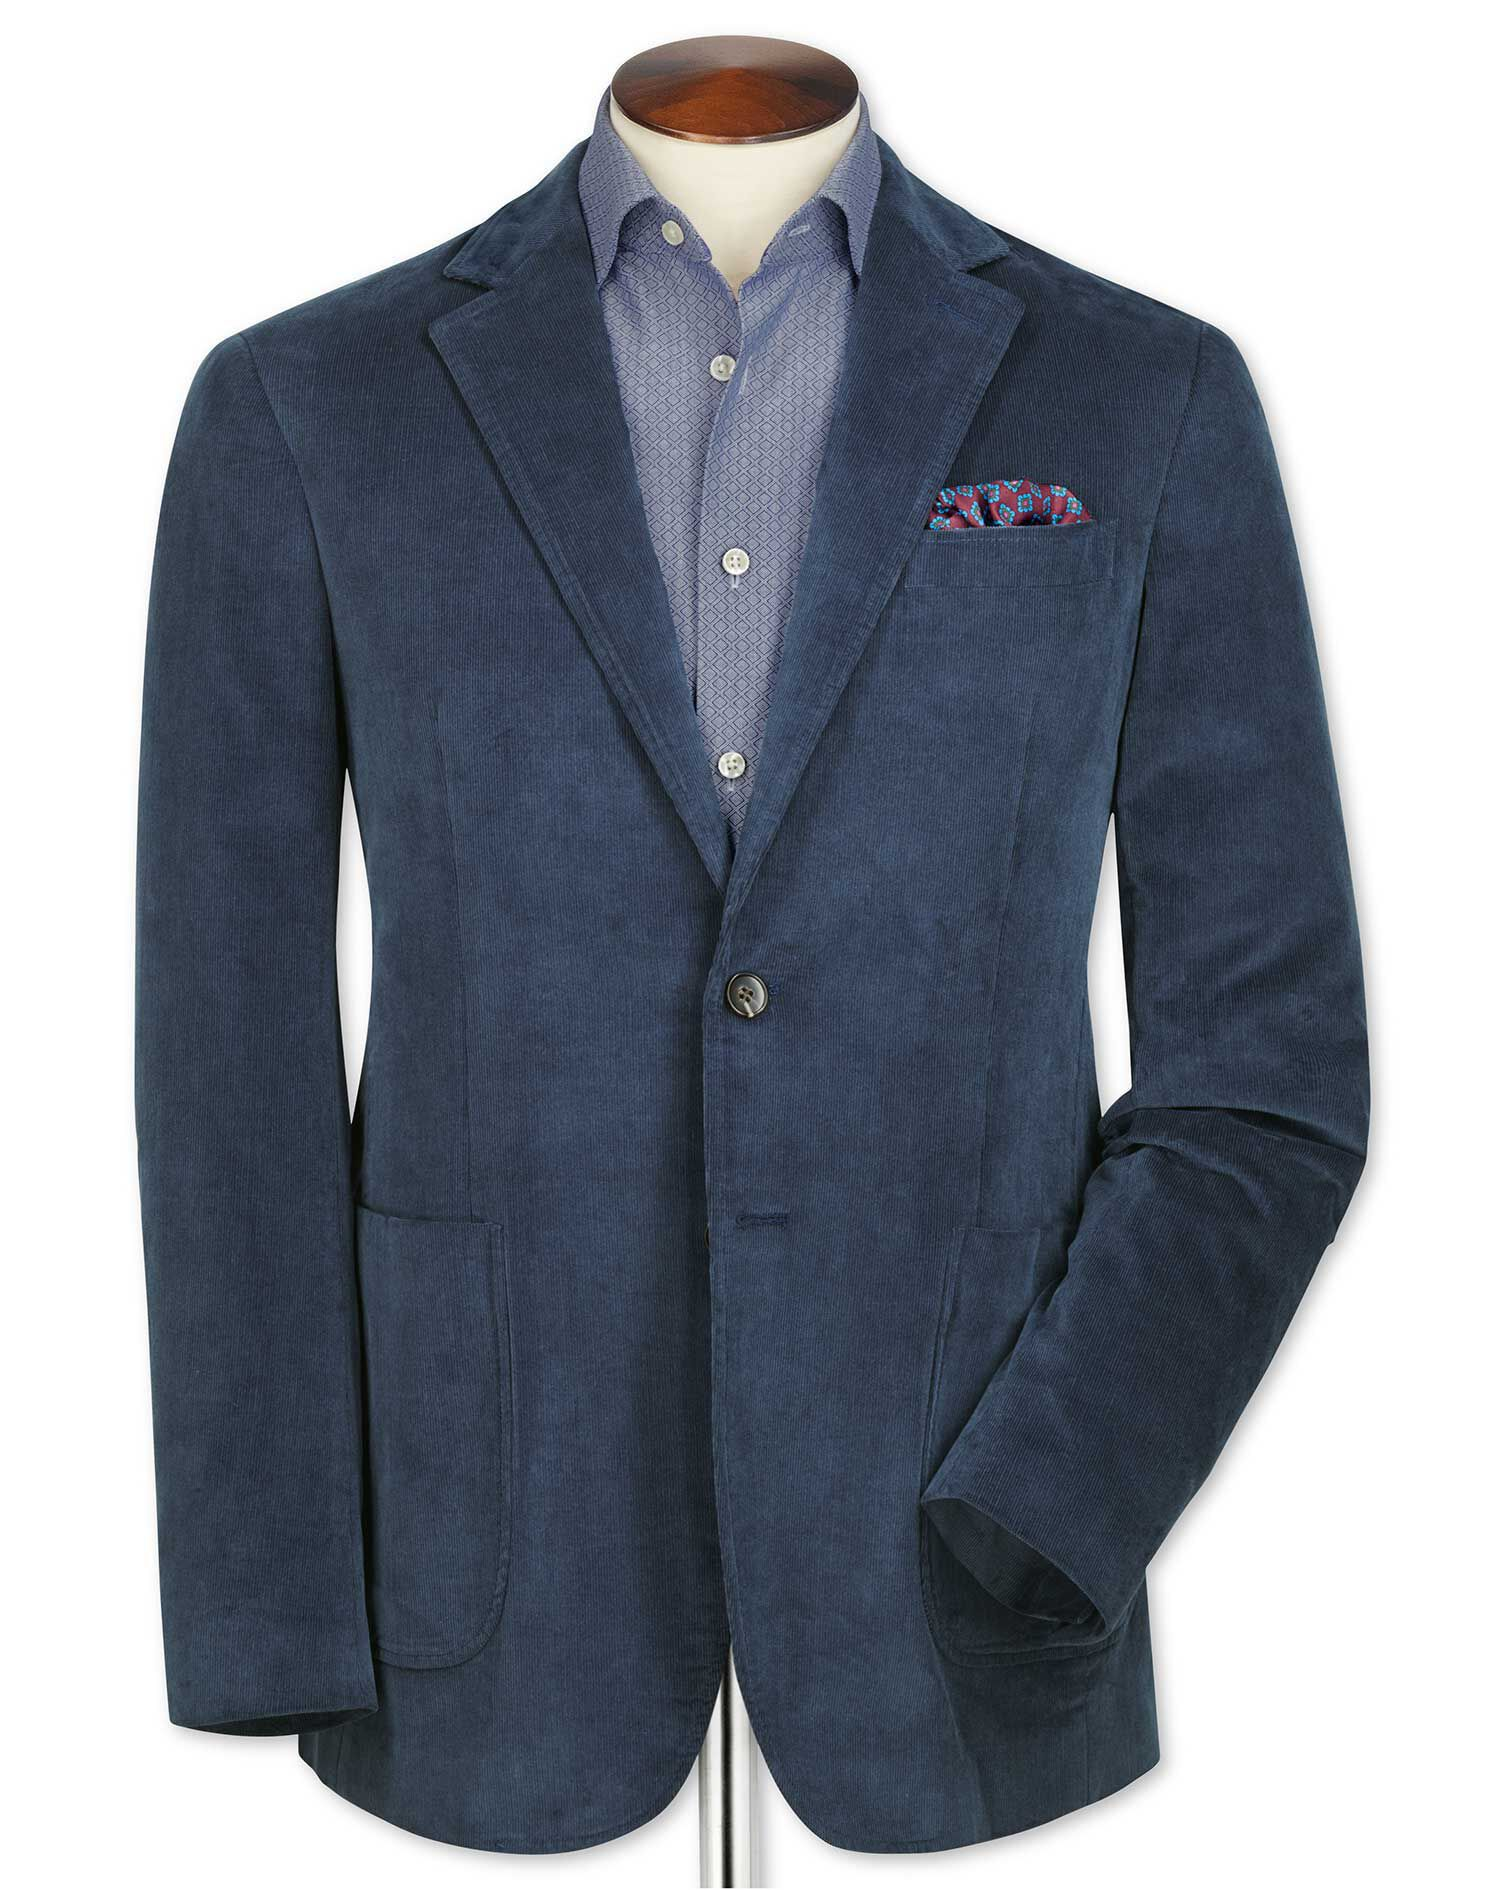 Slim Fit Blue Stretch Cord Cotton Jacket Size 42 Long by Charles Tyrwhitt